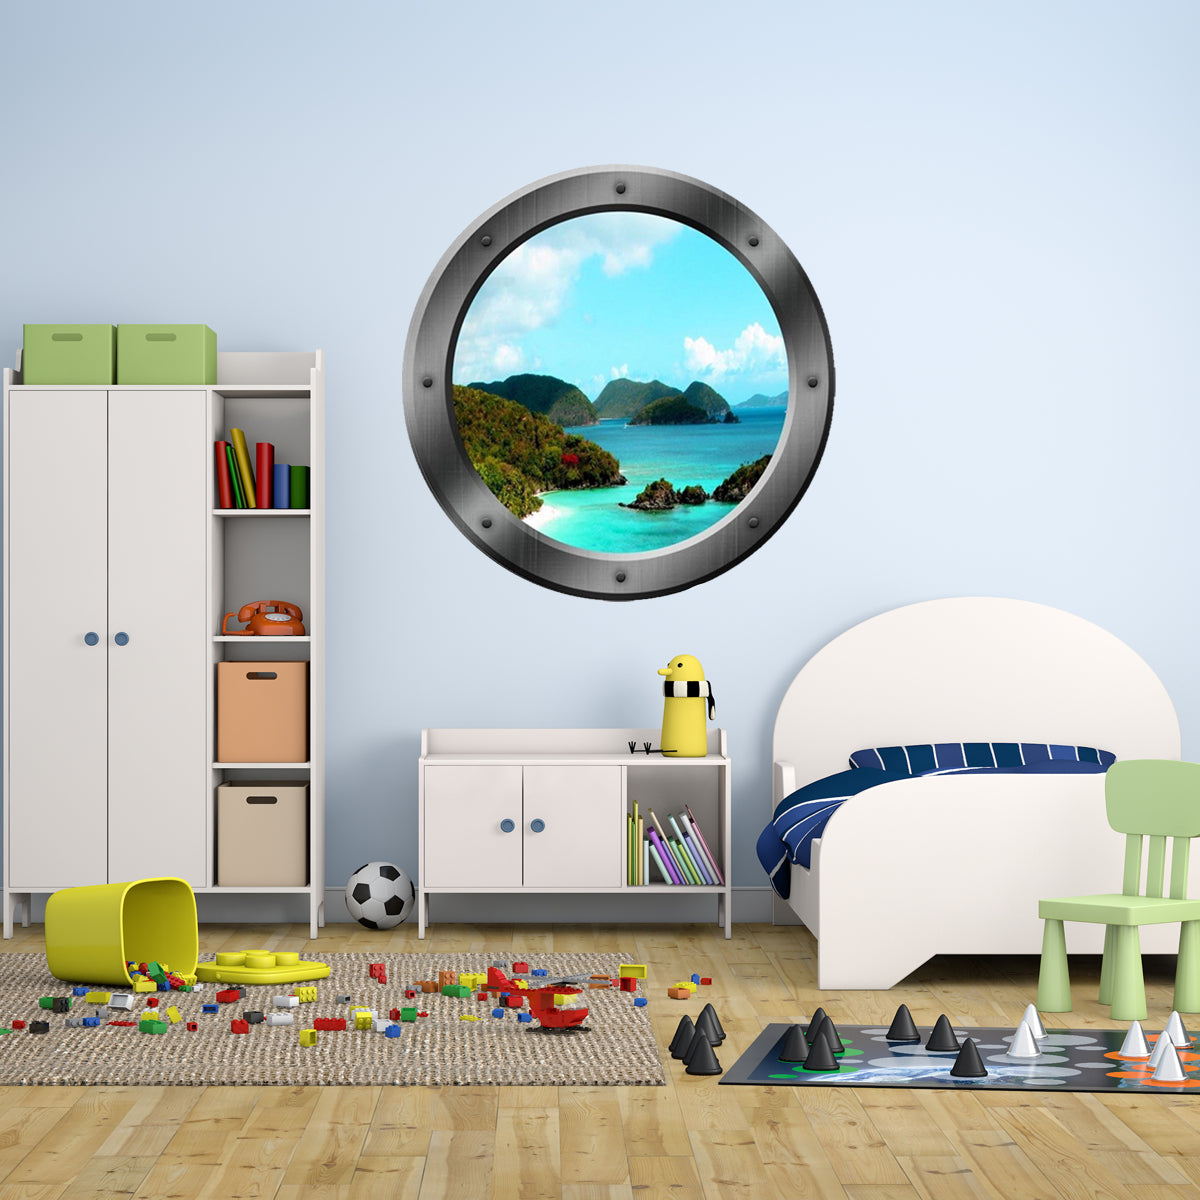 VWAQ Ocean Mountain View Peel and Stick Porthole Vinyl Wall Decal - P08 - VWAQ Vinyl Wall Art Quotes and Prints